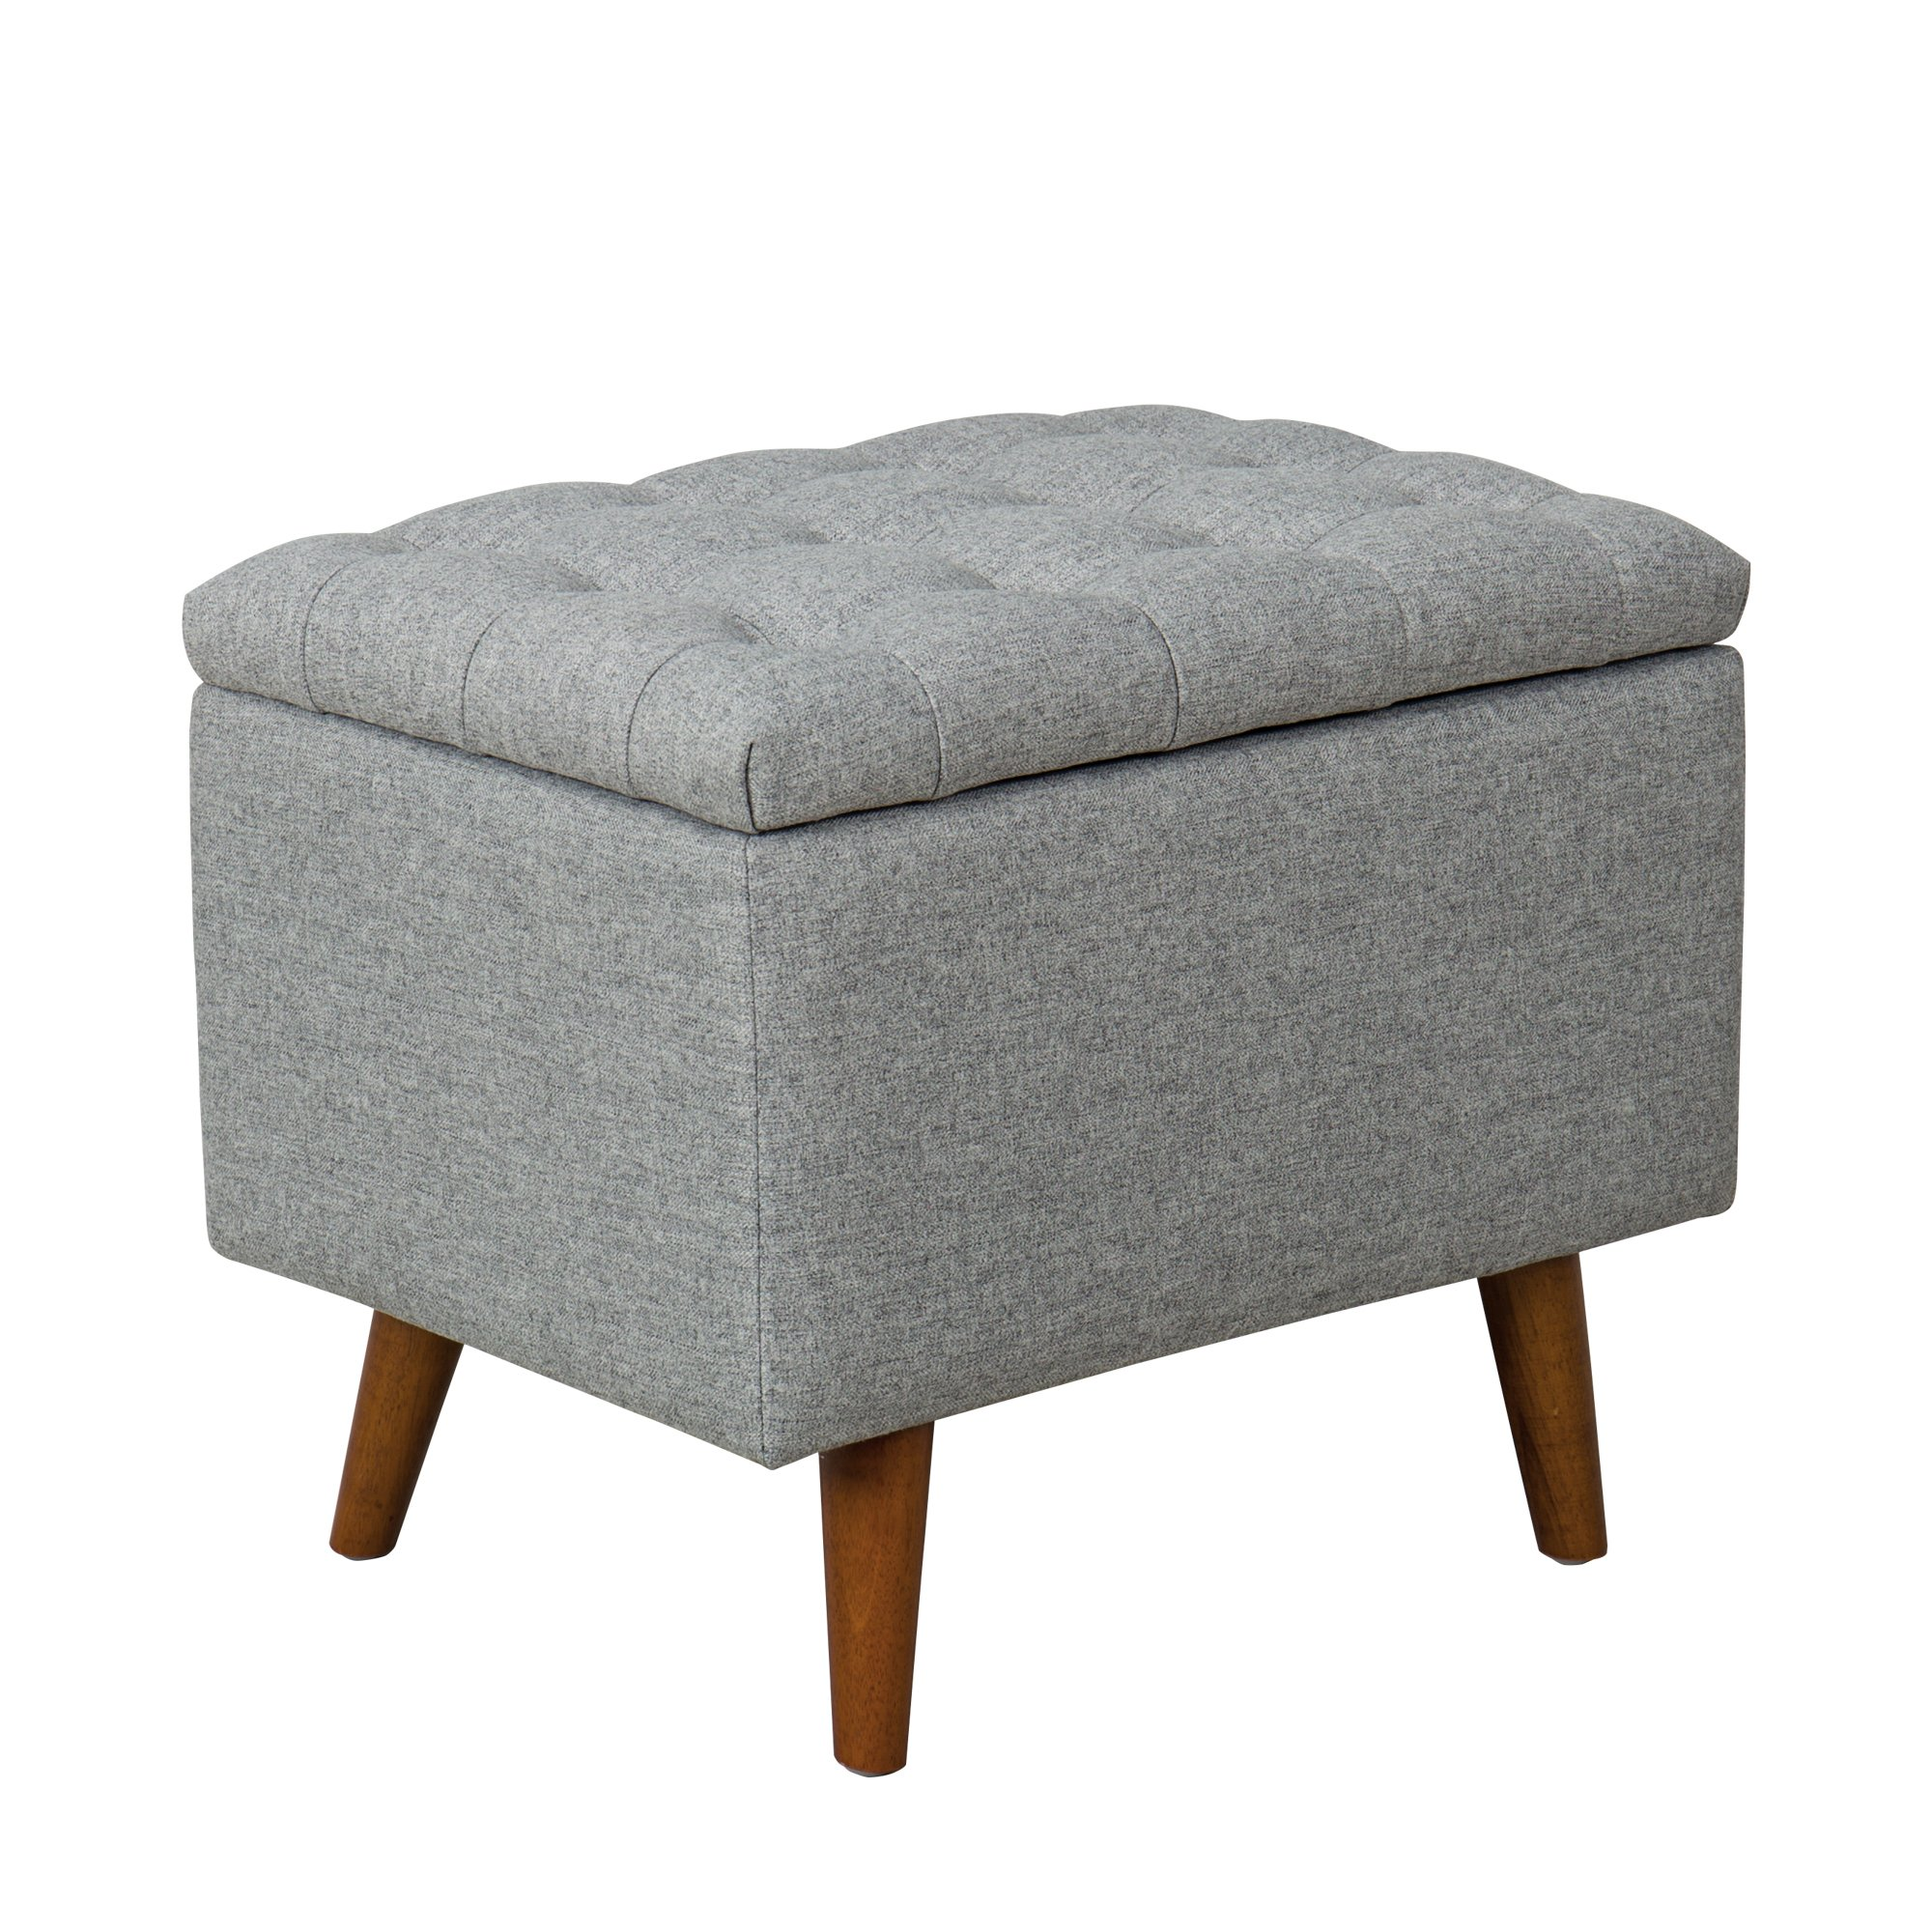 SPATIAL ORDER - Arlington Small 22.5'' Storage Bench with Button Tufting, Light Gray